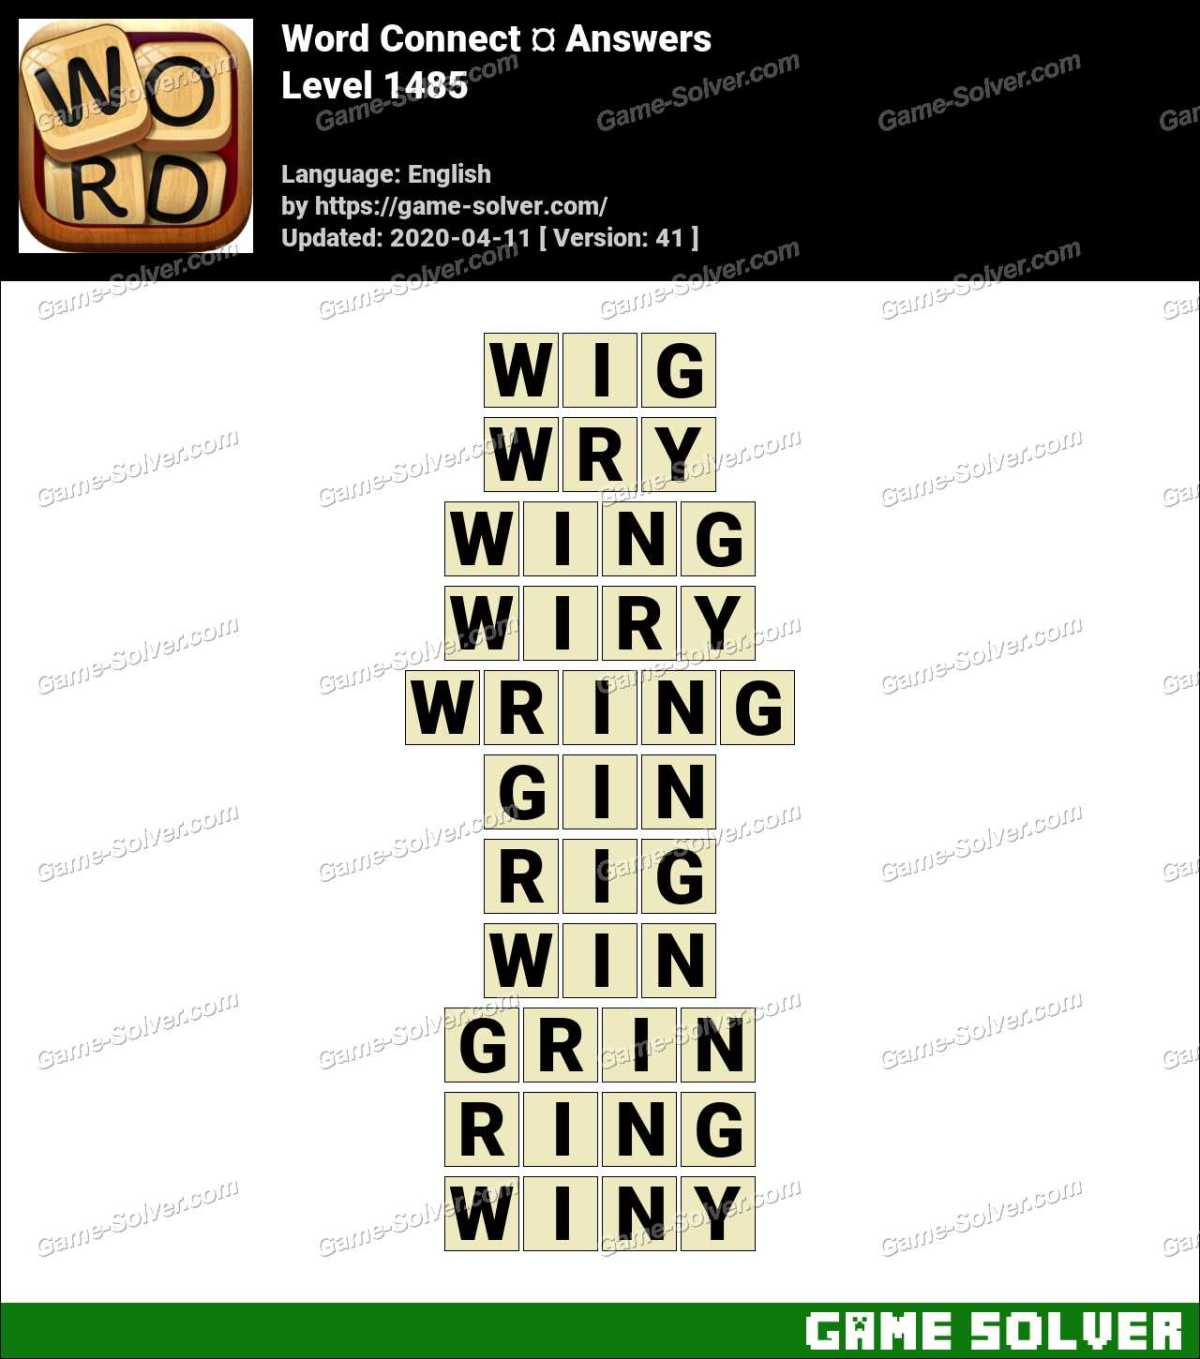 Word Connect Level 1485 Answers